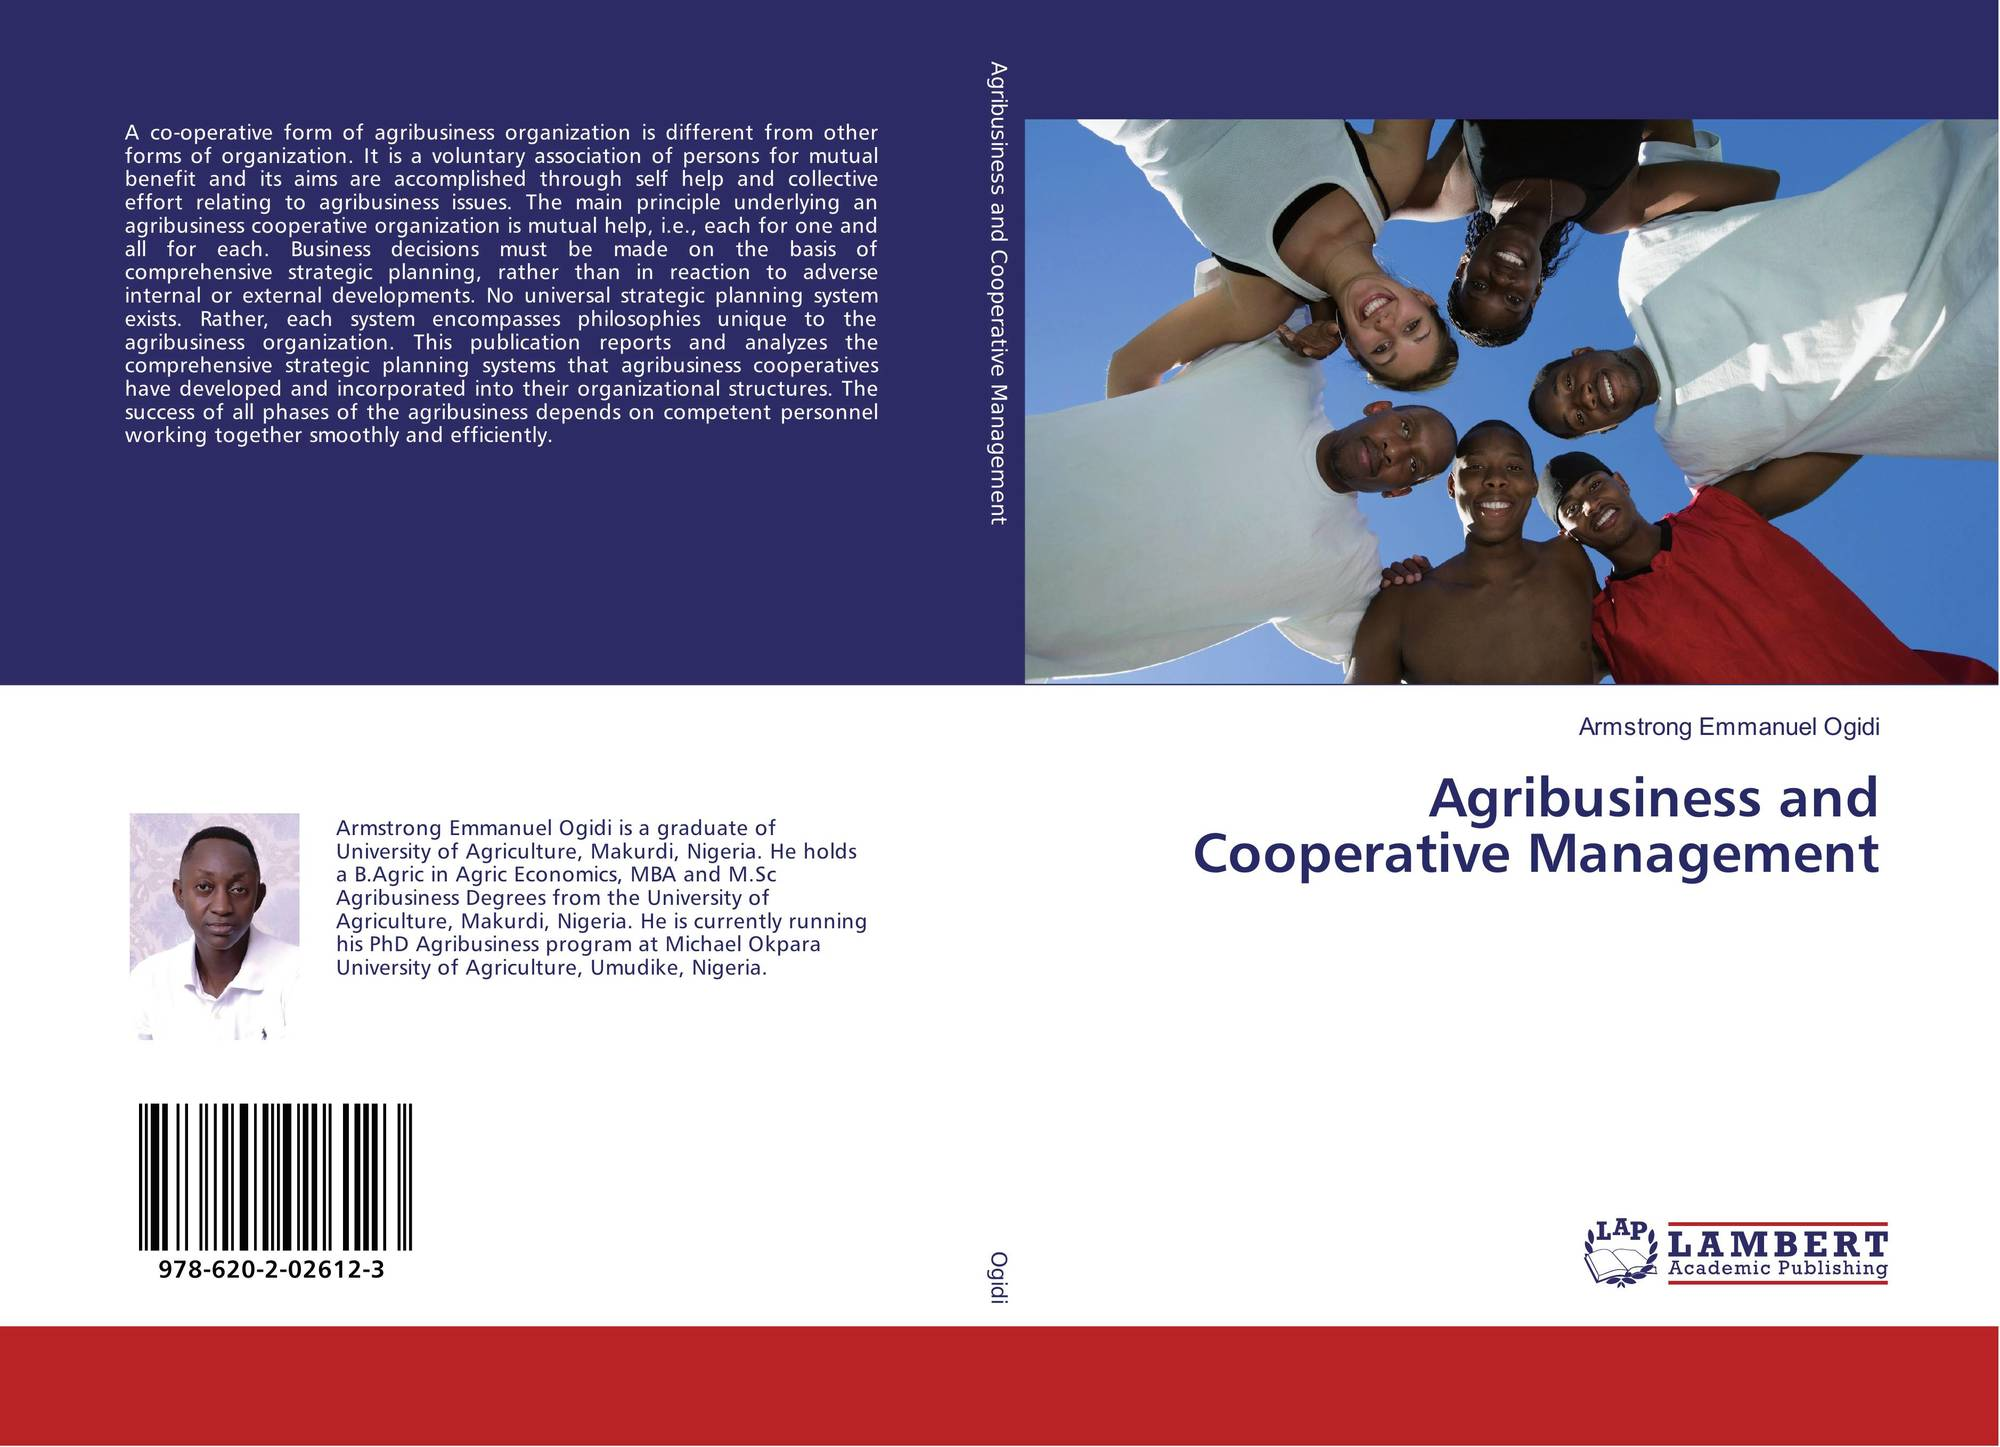 managing agribusiness Farm management, making and implementing of the decisions involved in organizing and operating a farm for maximum production and profit farm management draws on agricultural economics for information on prices, markets, agricultural policy, and economic institutions such as leasing and credit.